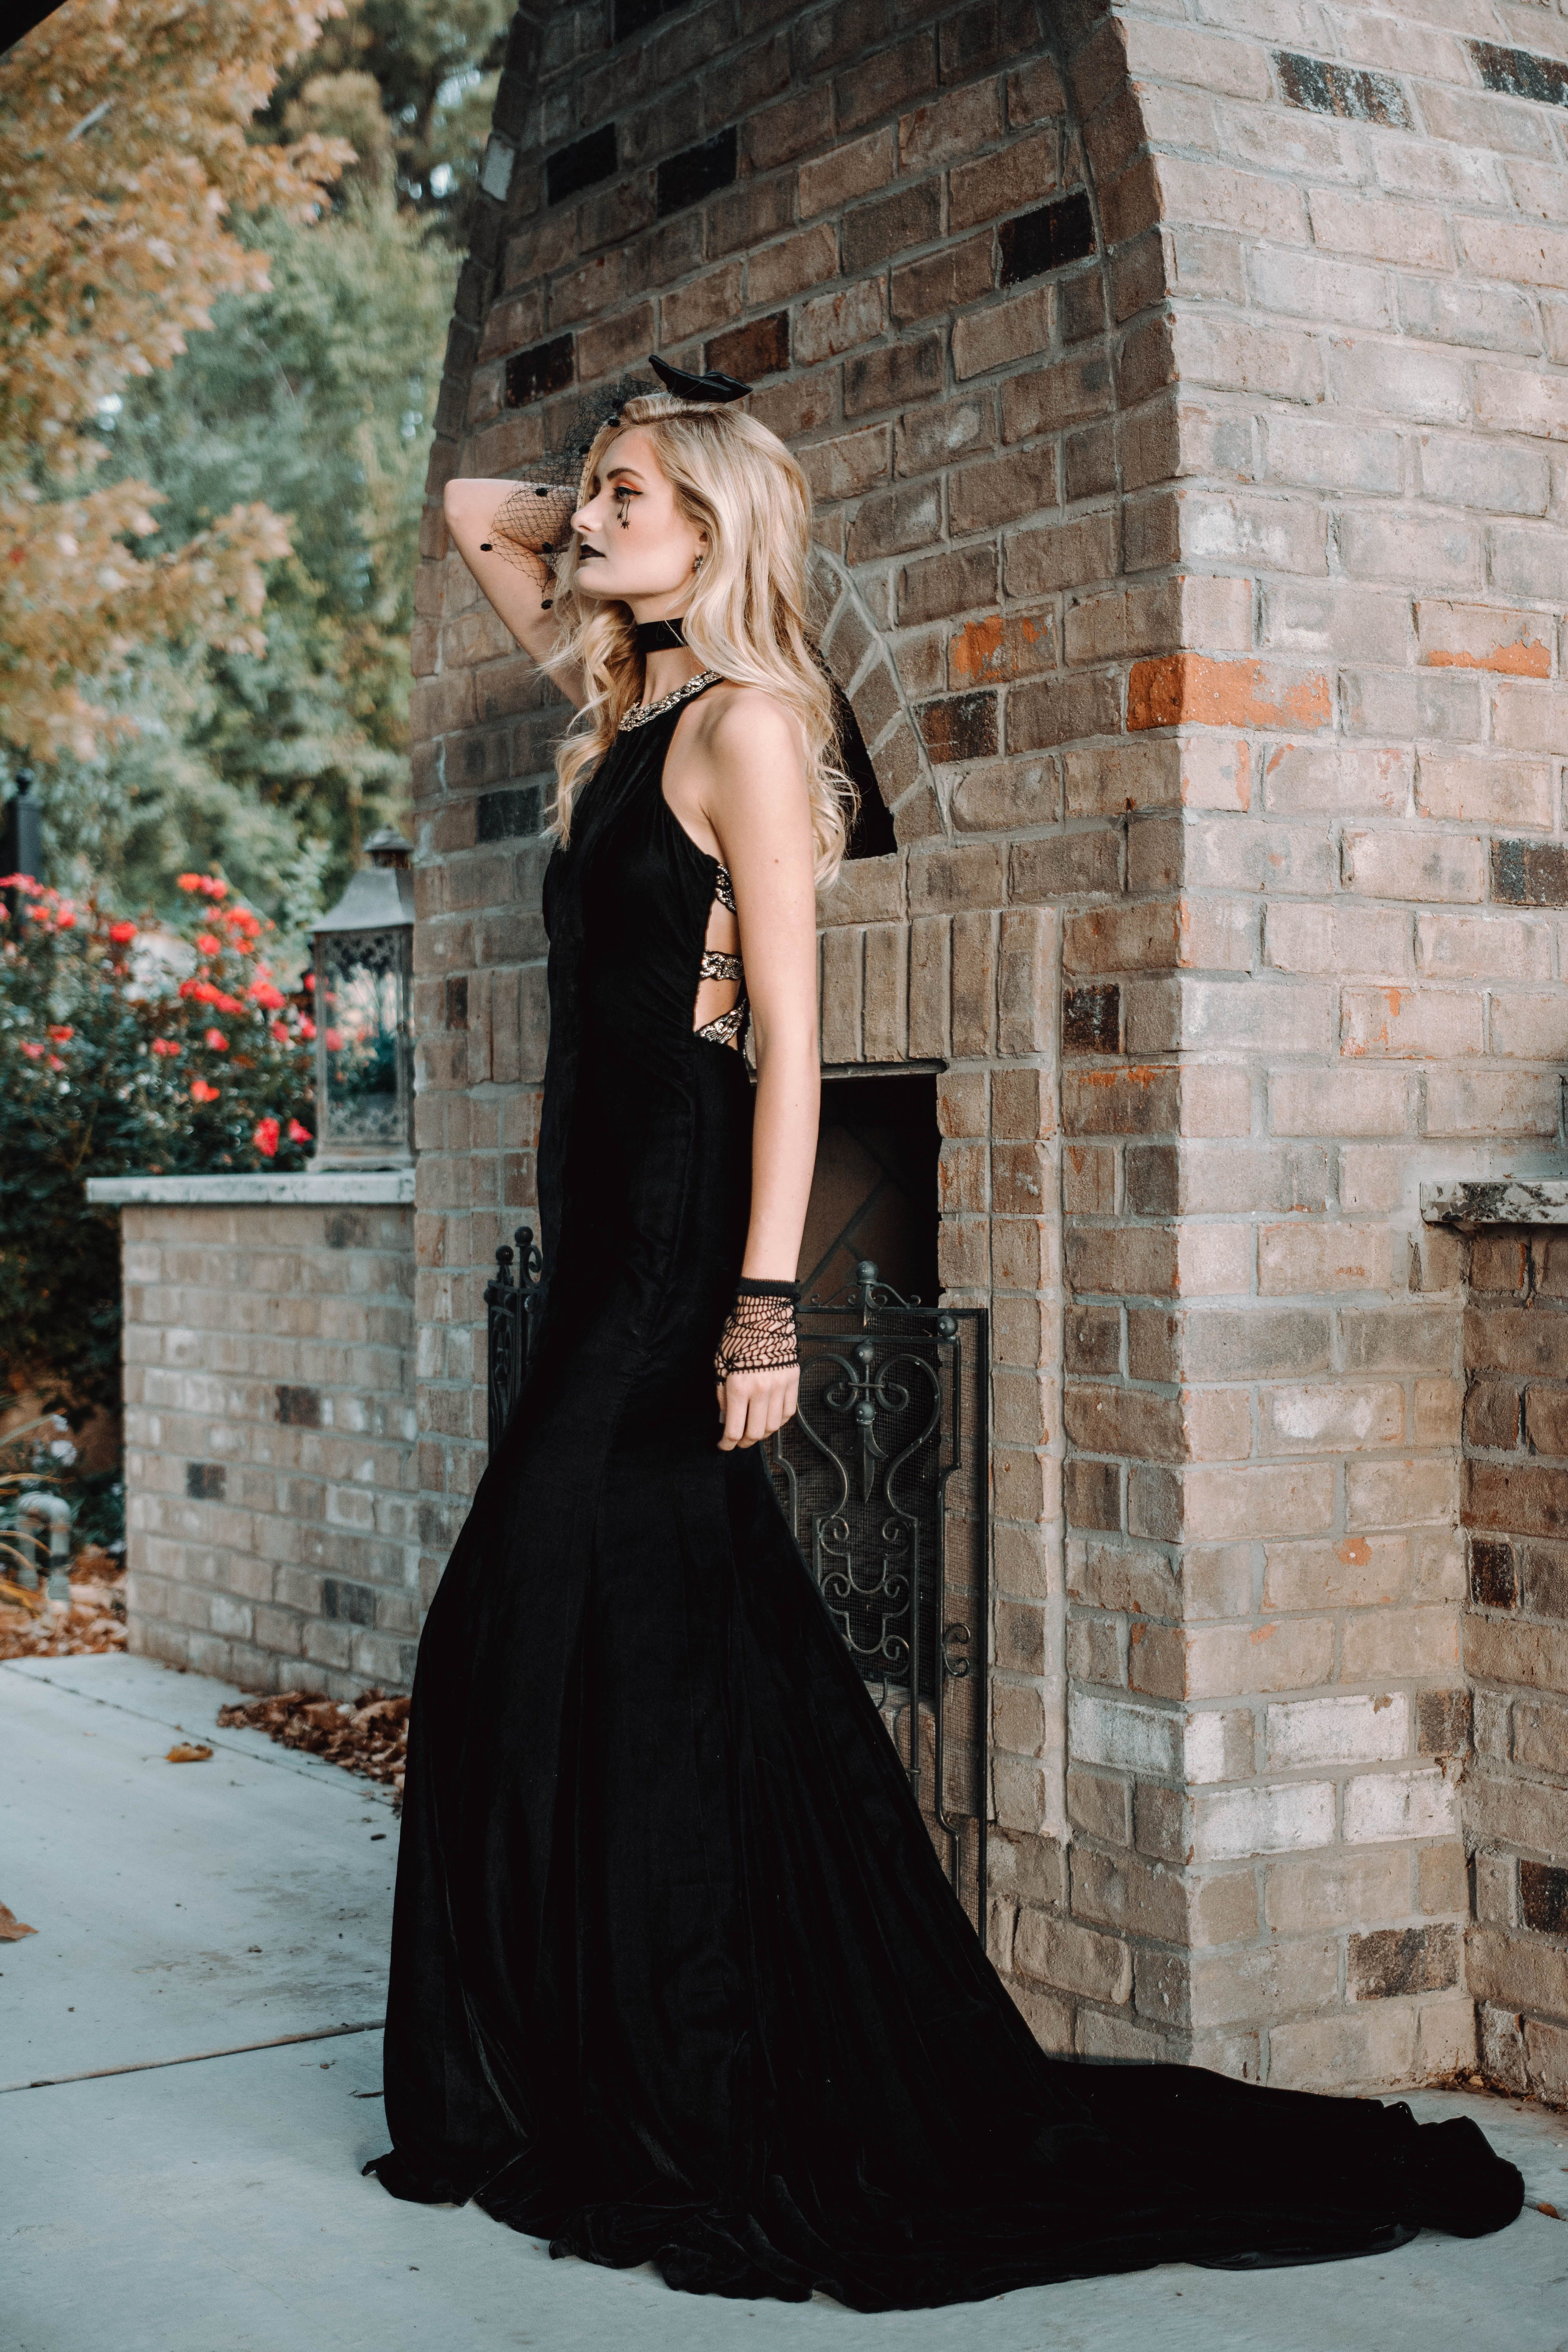 db1324e6d YPSILON DRESSES black fitted simple dress with beaded straps on back prom  pageant evening gown formal formalwear black tie red carpet event dress ...